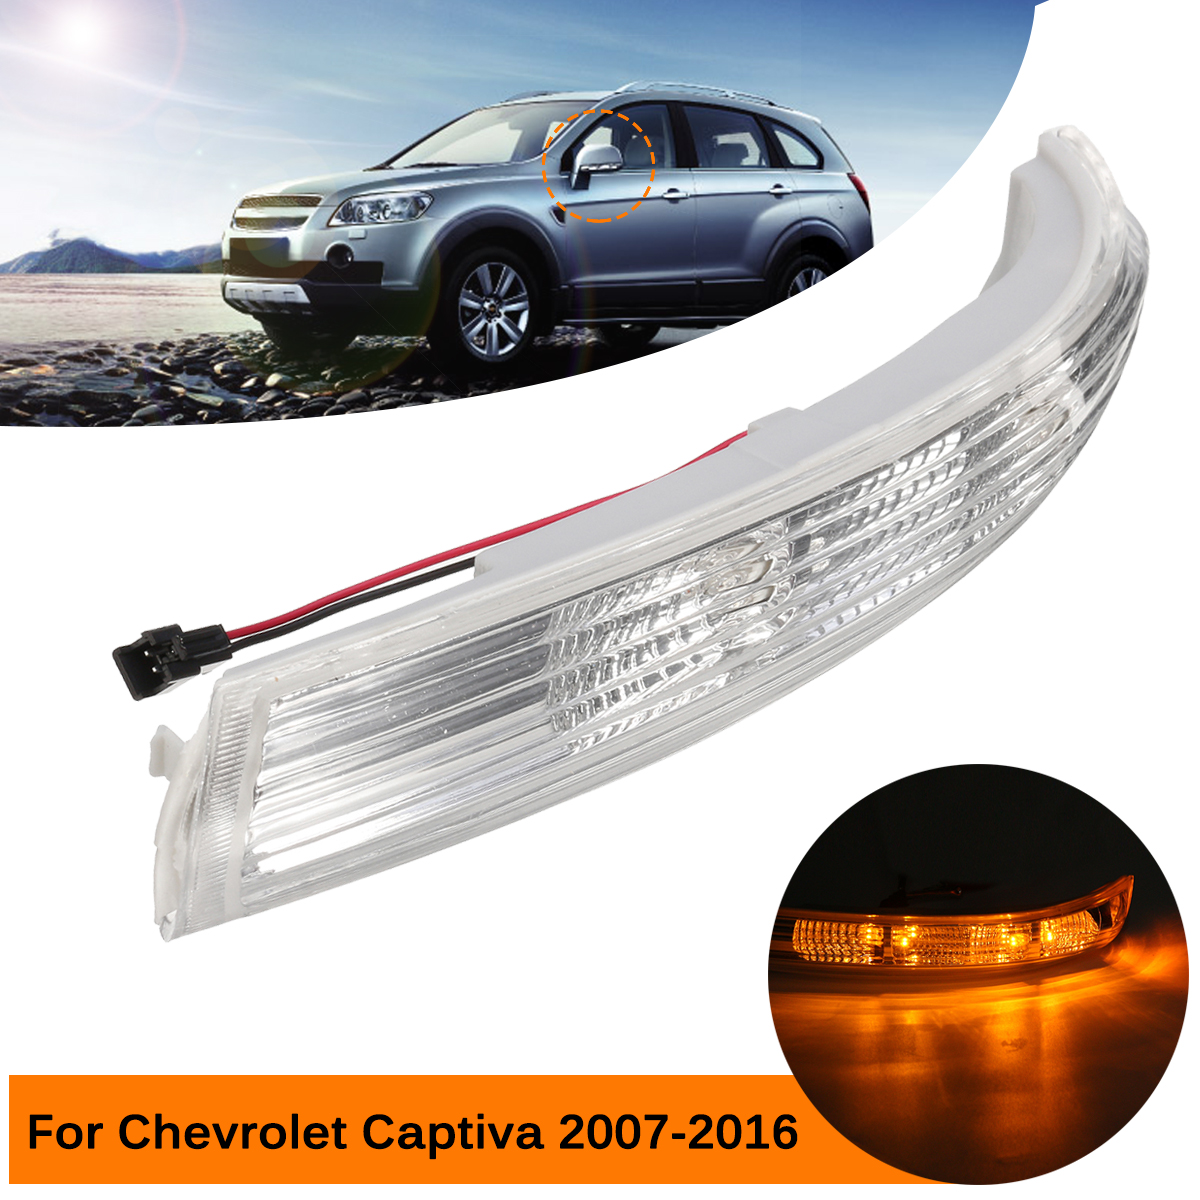 цена на 1Pc Car Rear View Side Mirror Turn Signal Light Left/Right Lamp For Chevrolet Captiva 2007-2016